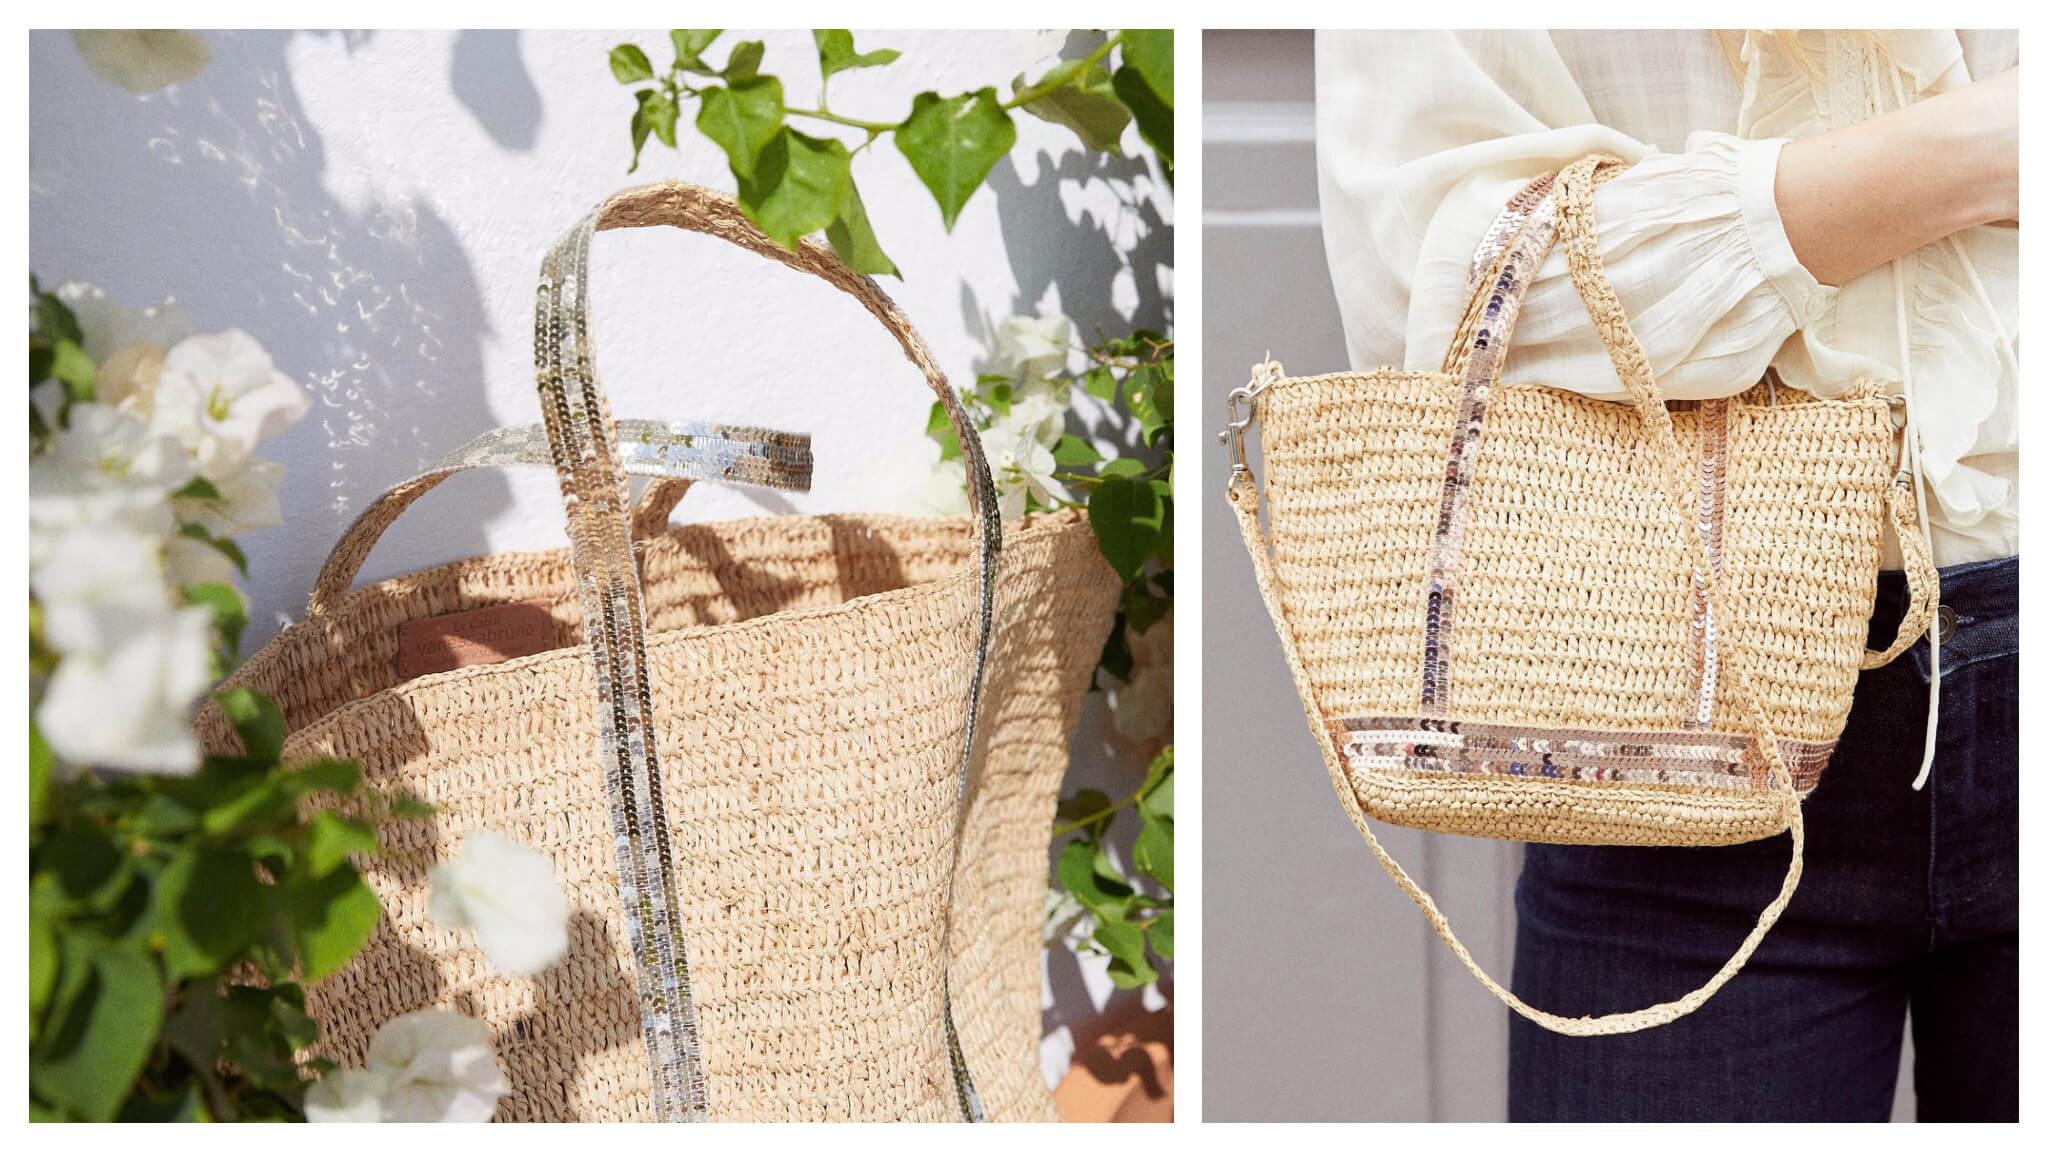 Left: A light wicker summer bag from Vanessa Bruno sits in the sun between two rose bushes, which have green leaves and white roses, Right: A woman wearing a white top and jeans holds a cute wicker summer bag from Vanessa Bruno.